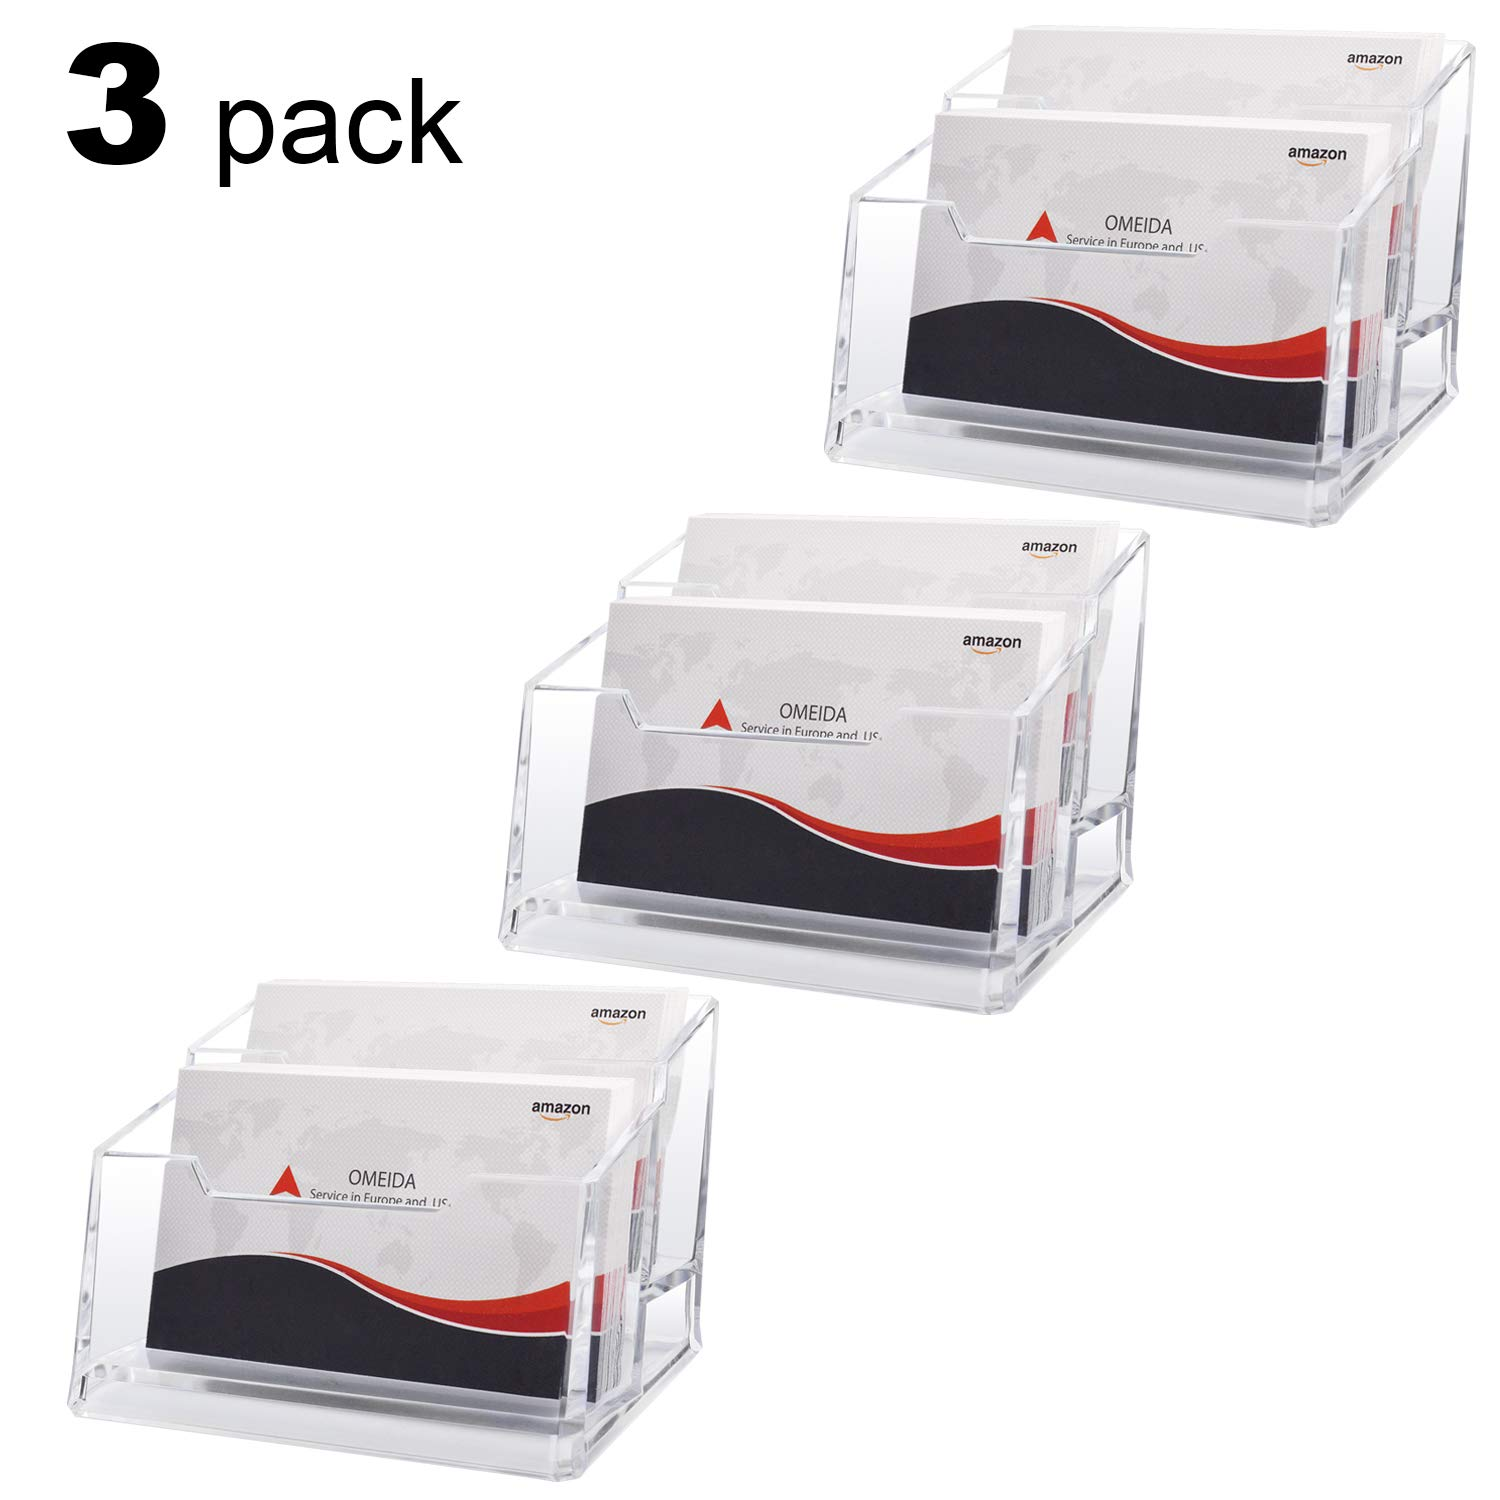 Amazon MaxGear Clear Business Card Stand Holder 2 Tier Acrylic Business Card Holder Display for Desk with 120 Card Capacity 3 Pack fice Products